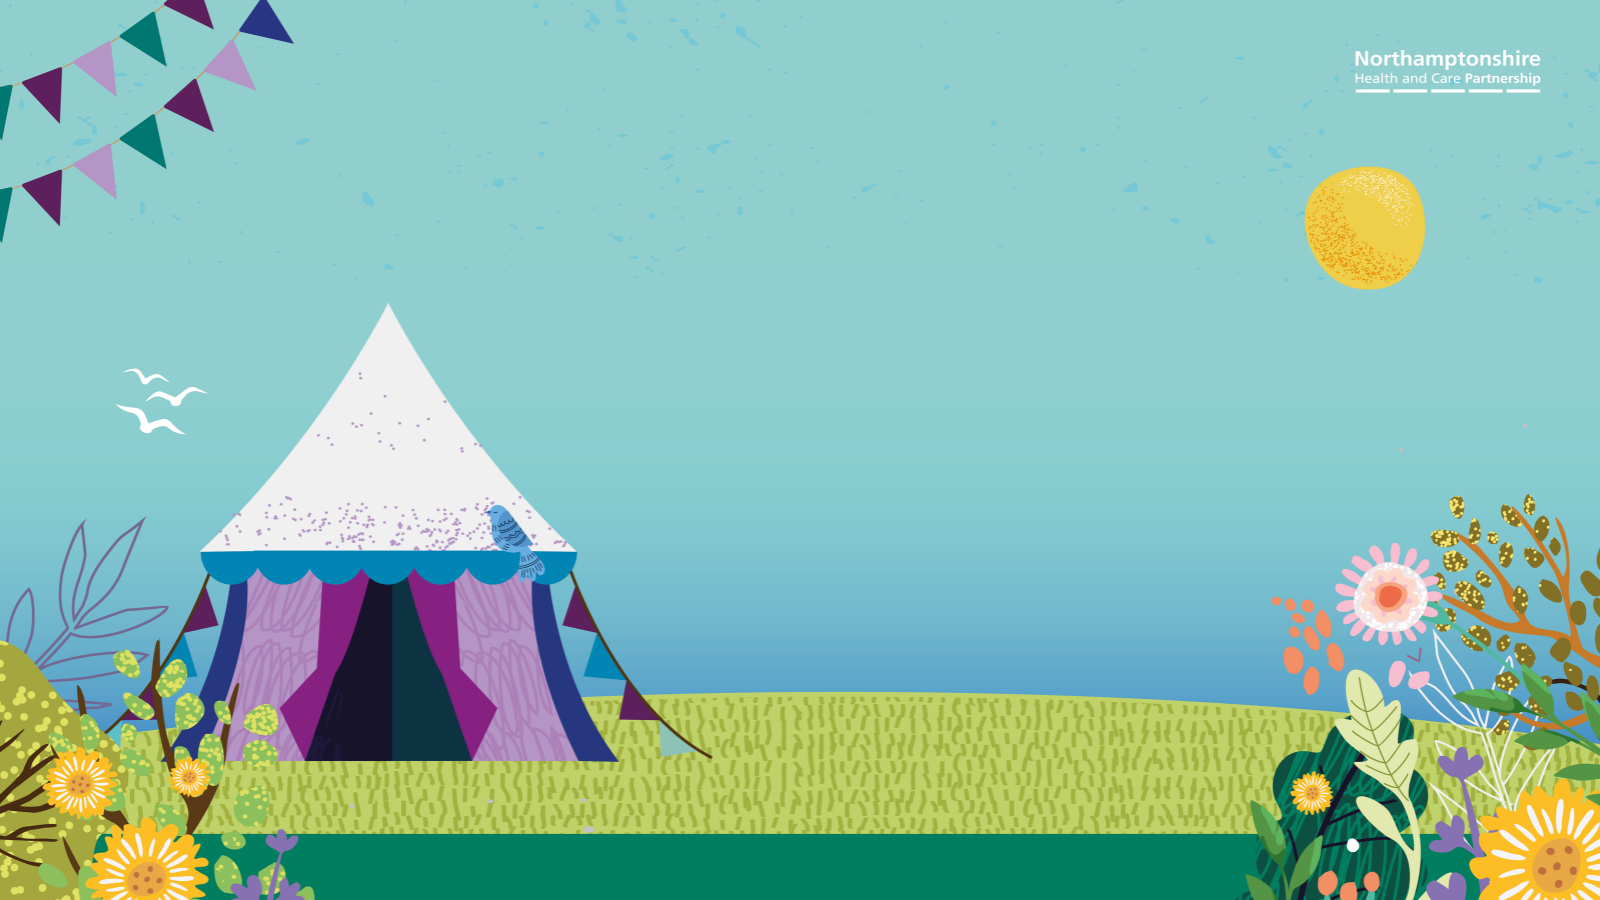 The Virtual Wellbeing Festival tent